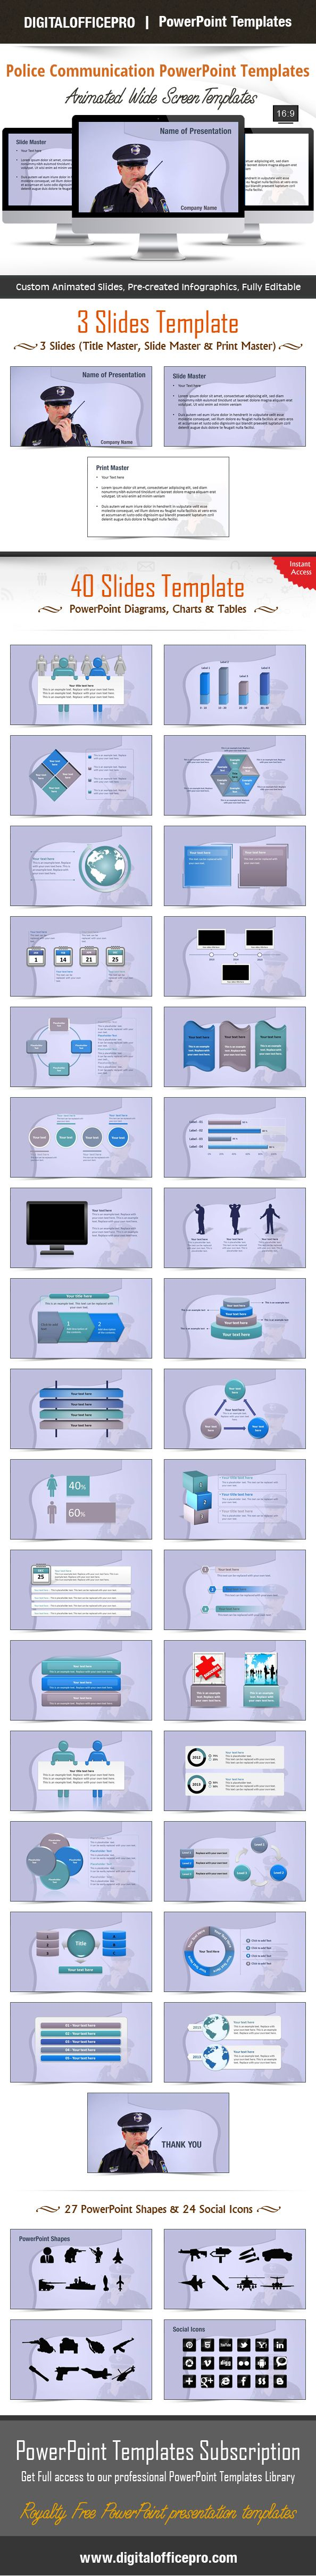 13 best powerpoints images on pinterest presentation layout impress and engage your audience with police communication powerpoint template and police communication powerpoint backgrounds from toneelgroepblik Gallery